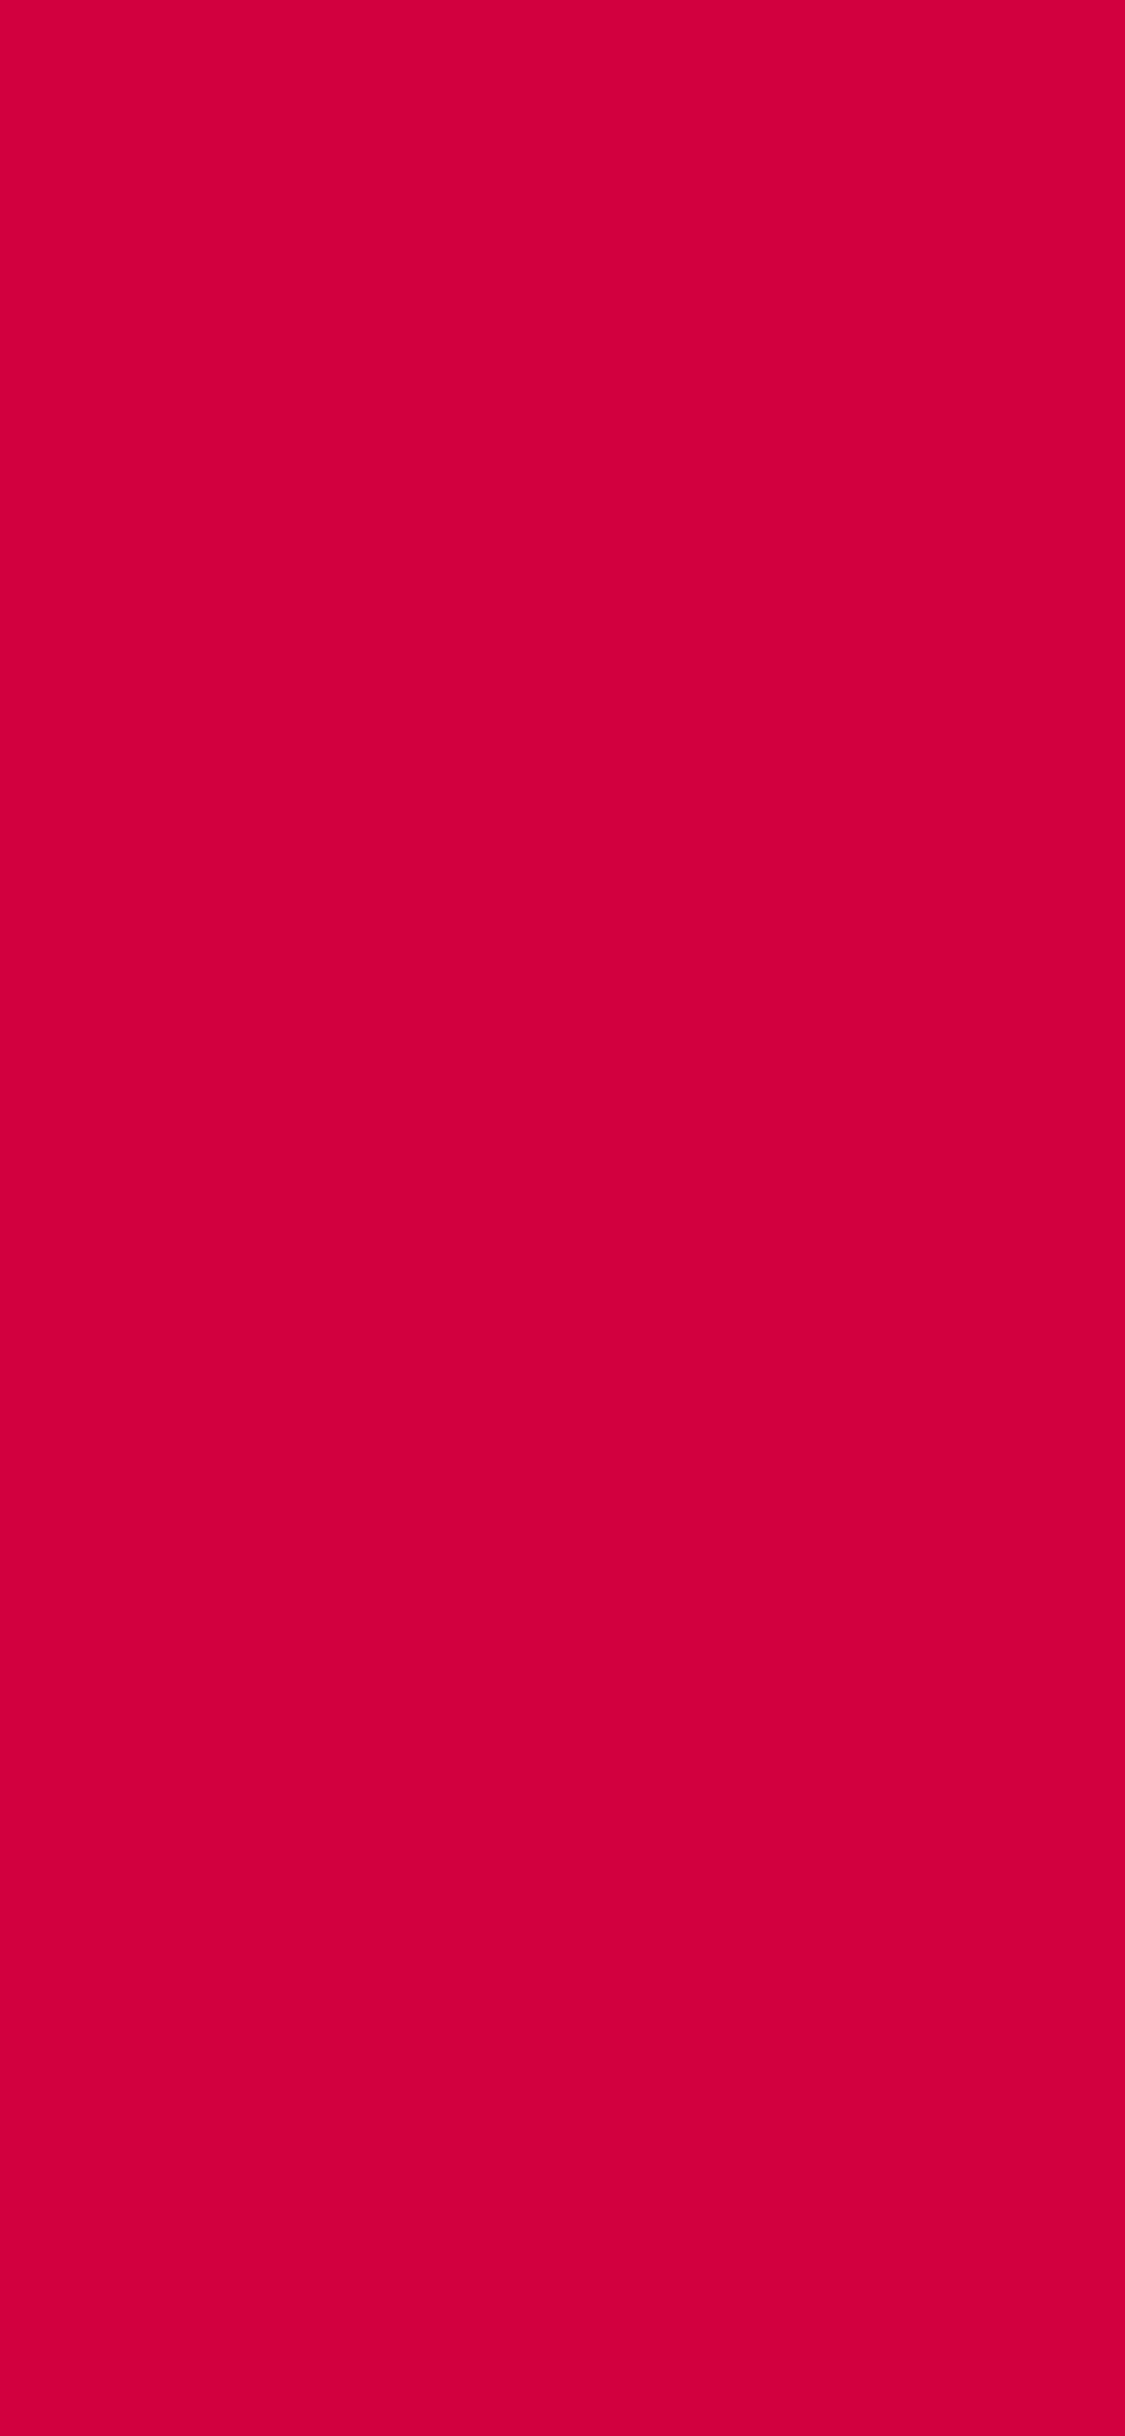 1125x2436 Utah Crimson Solid Color Background